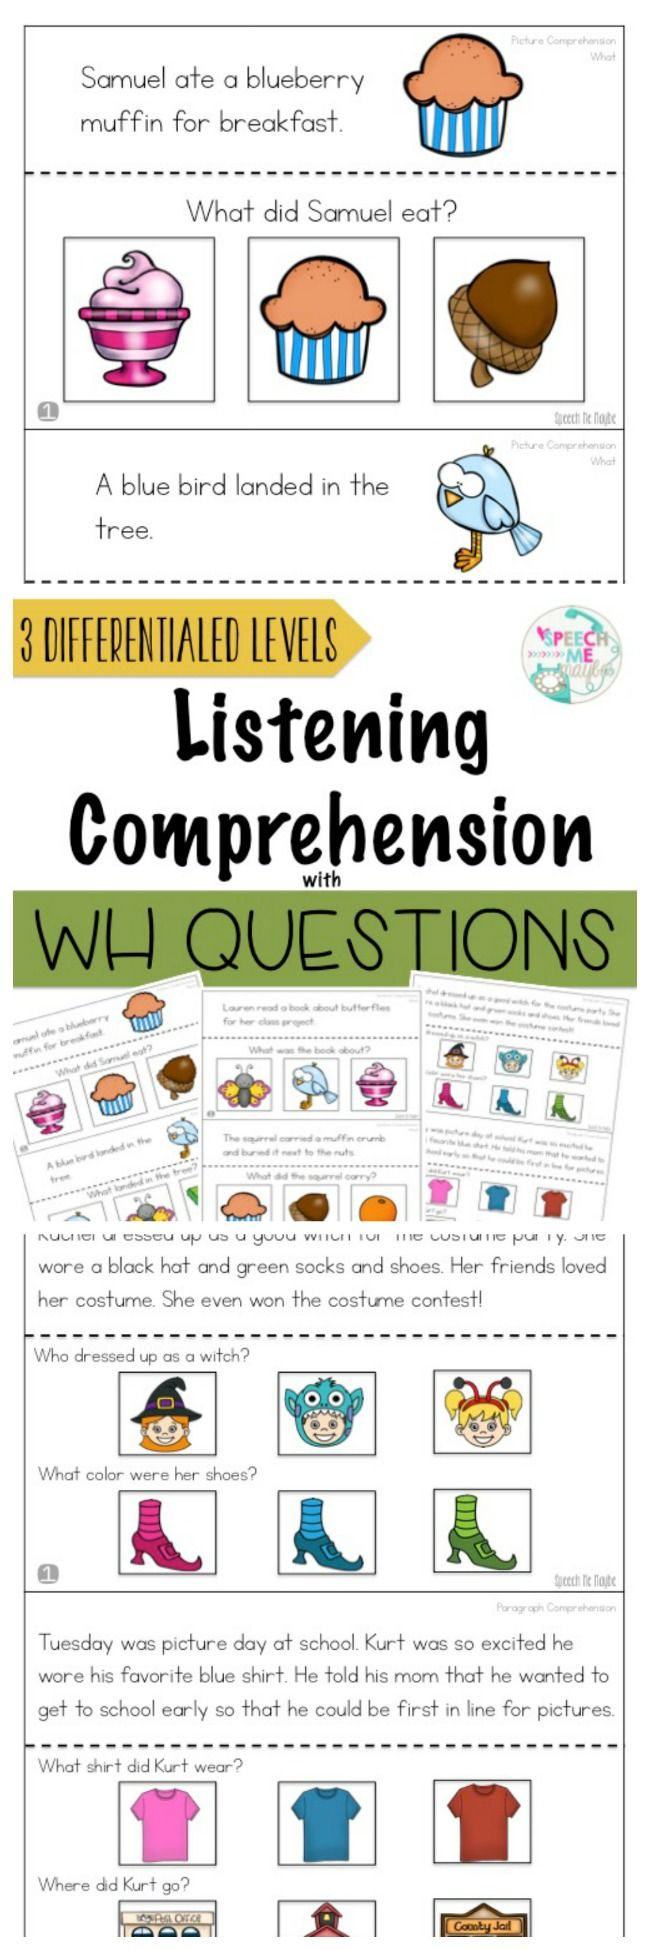 Best ideas about Wh Questions on Pinterest   English language     cbtis       ingl  s english   Jimdo